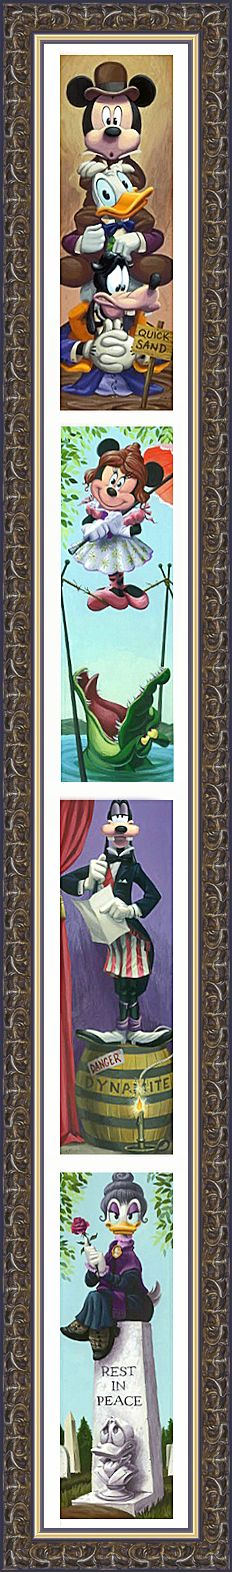 ✶ Haunted Mansion Photos as Disney Characters ★               ★Presentation by Peter Pan★